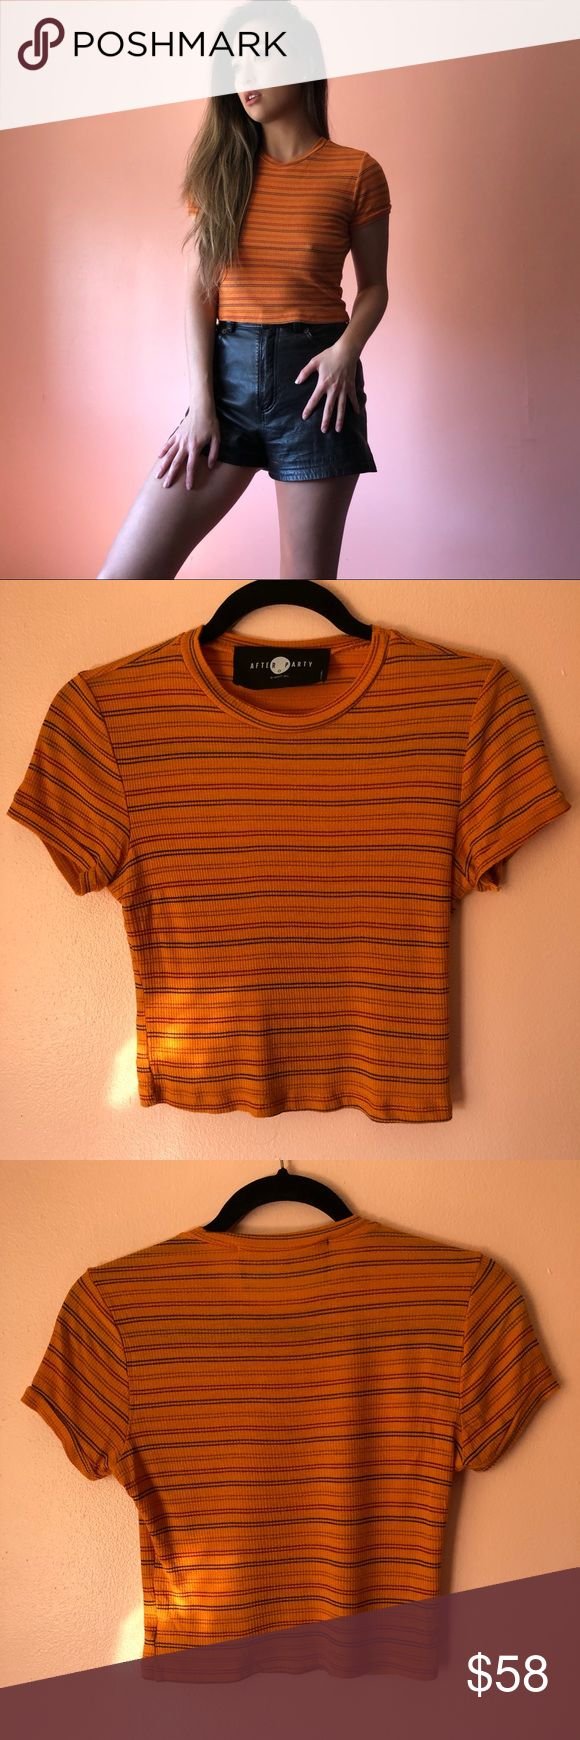 Nasty Gal After Party Orange Stripe Tee Hang with the dudes in this orange striped tee by After Party by Nasty Gal. Features a crew neck, short sleeves, slightly cropped fit in a lightweight rib vintage fabric. Wear with denim. Fits like an XS-S. Marked size S. No returns allowed. Please ask all questions before buying. Follow IG: [at] jacqueline.pak for sneak peeks, first dibs, giveaways and discount codes. #nastygal #vintage Nasty Gal Tops Tees - Short Sleeve